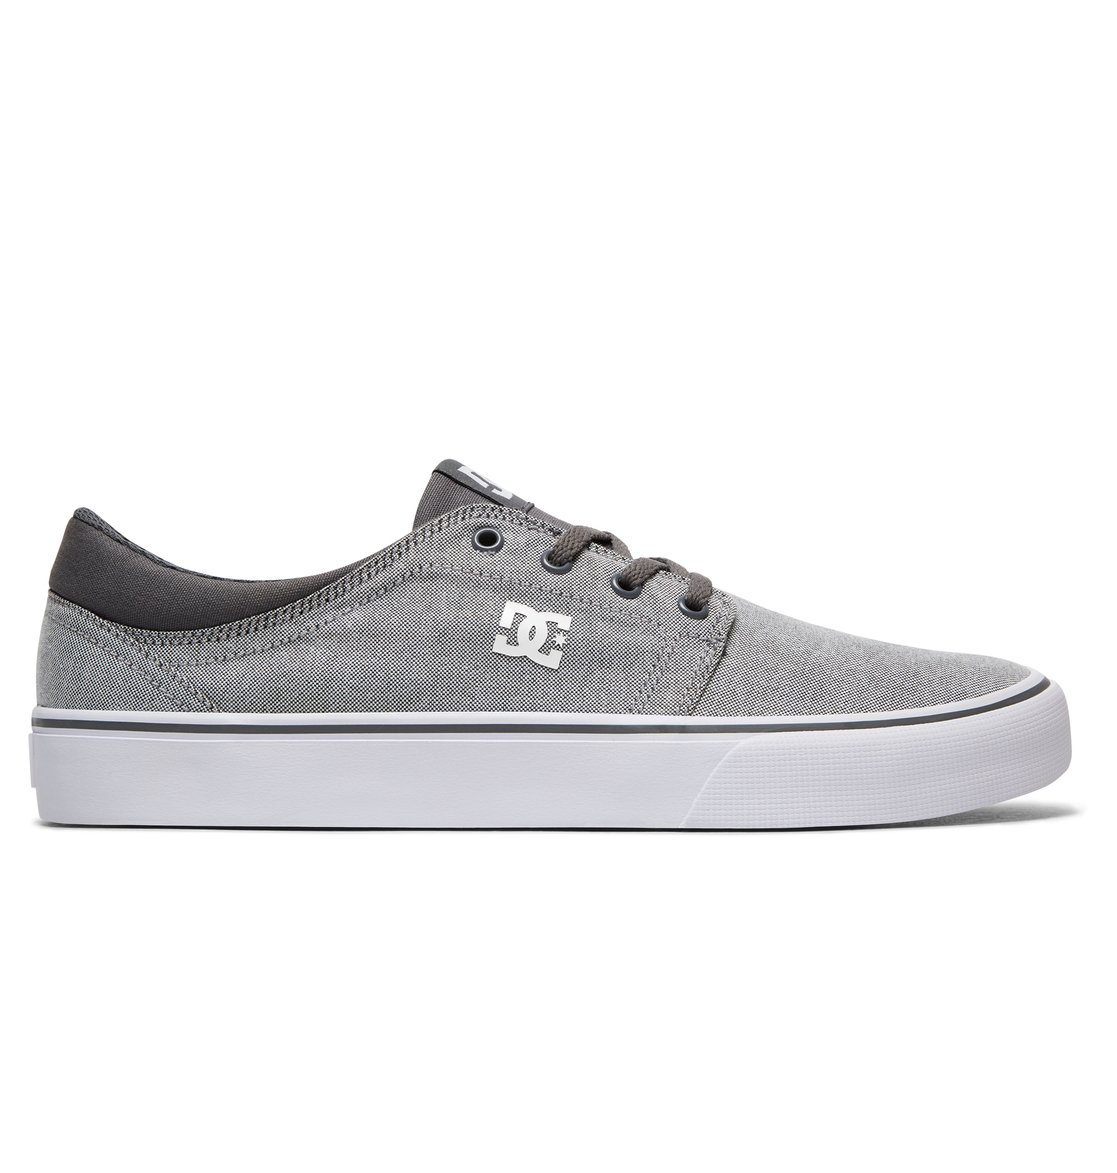 Chaussures Trase Tx Se Grey Black - DC Shoes